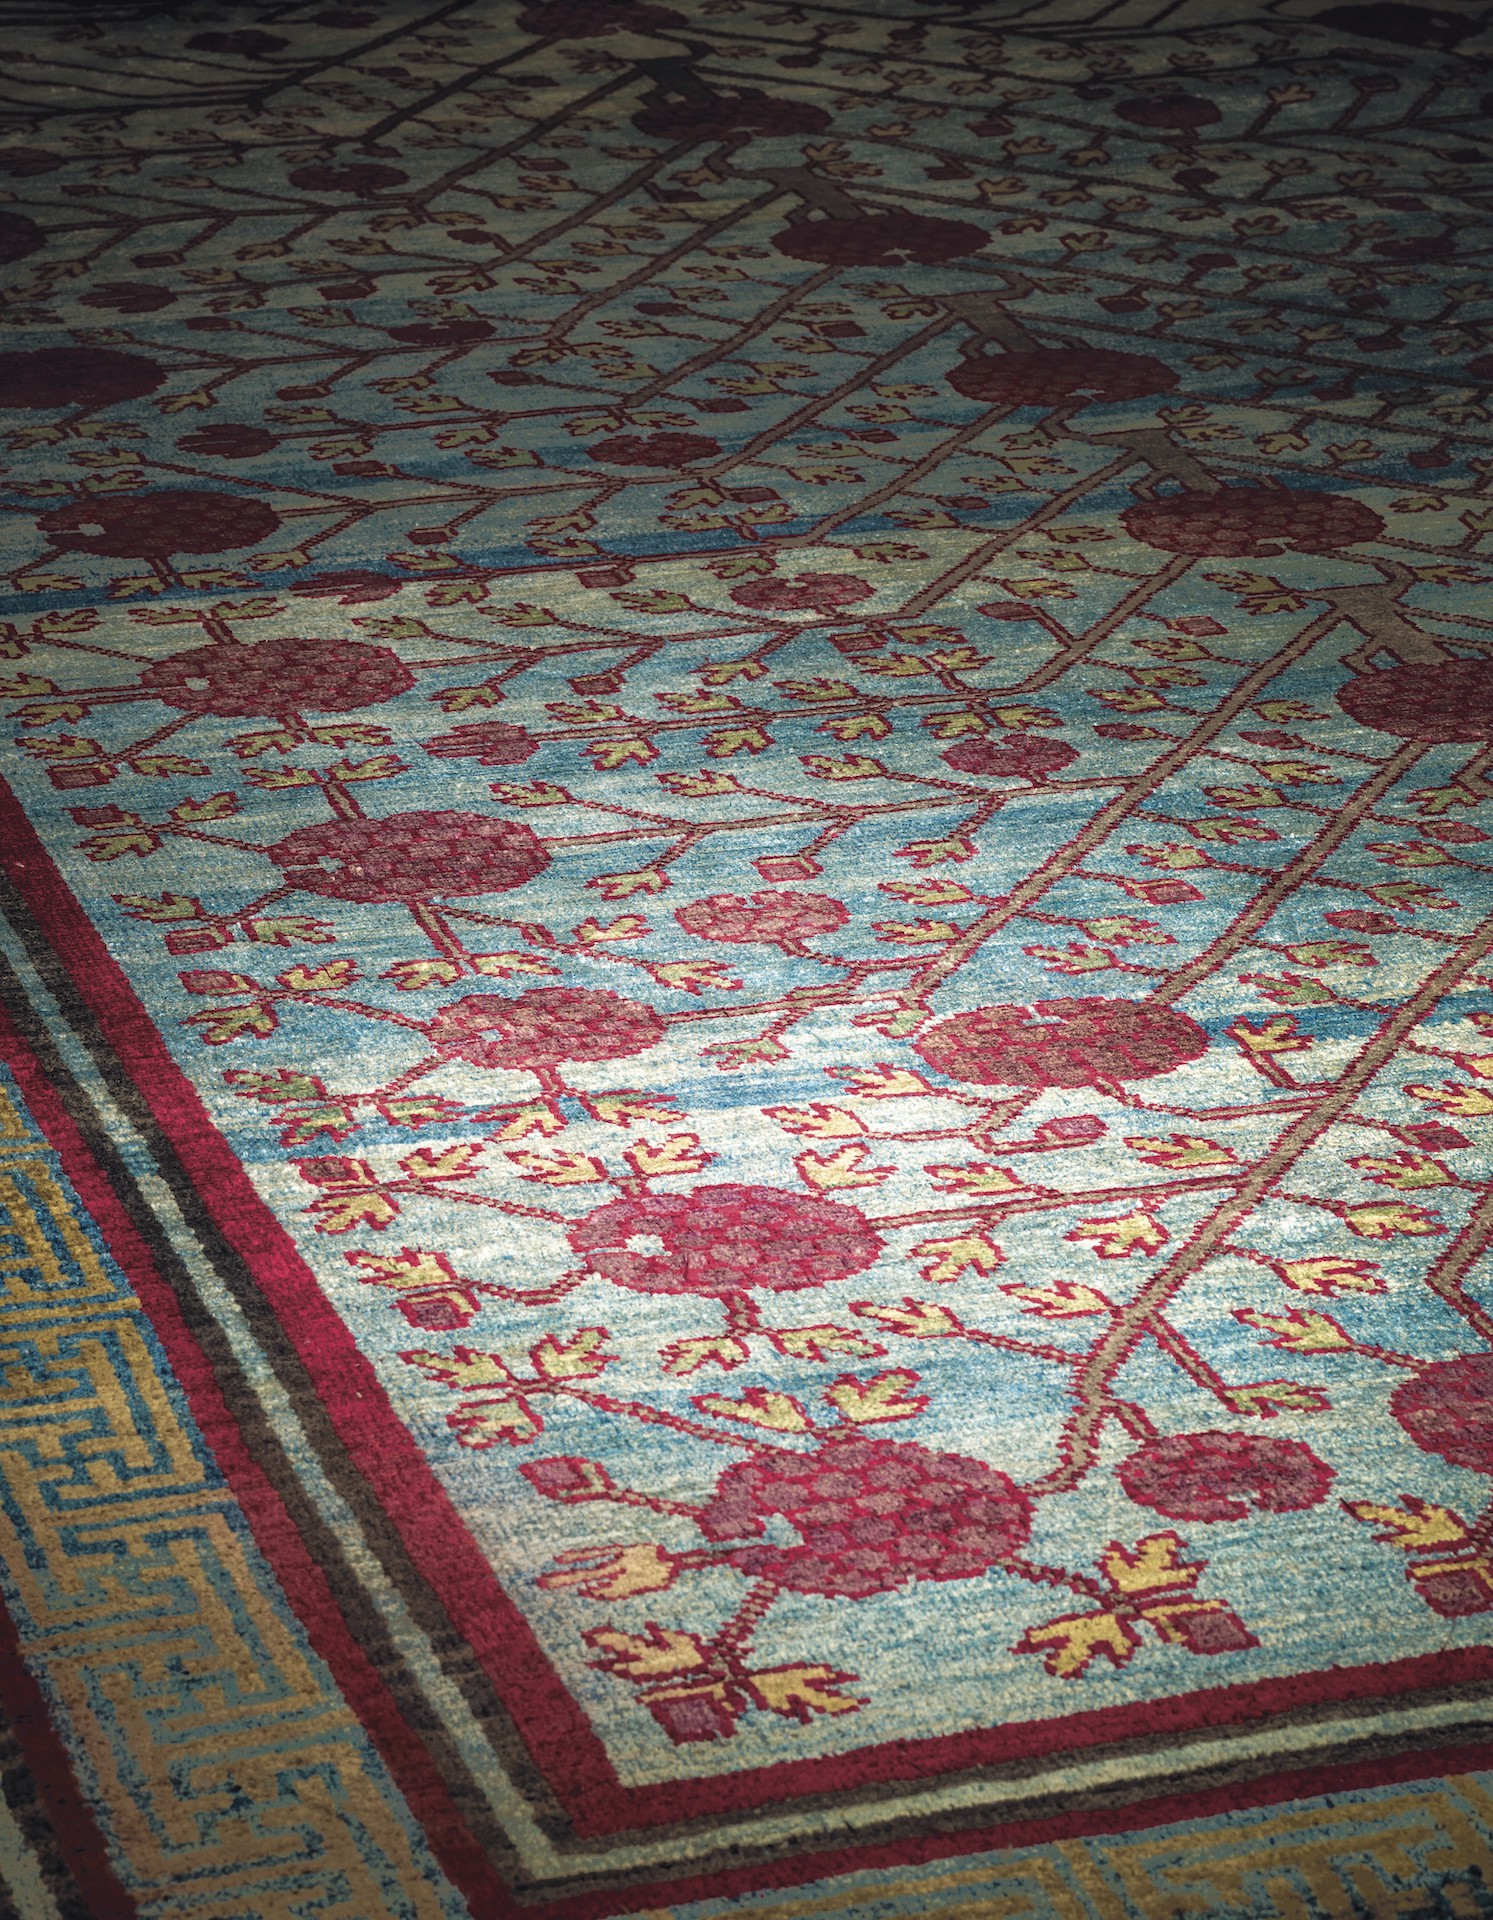 A SILK YARKAND CARPET, 11ft.8in. x 5ft.1in. (359cm. x 154cm.) £50,000-70,000